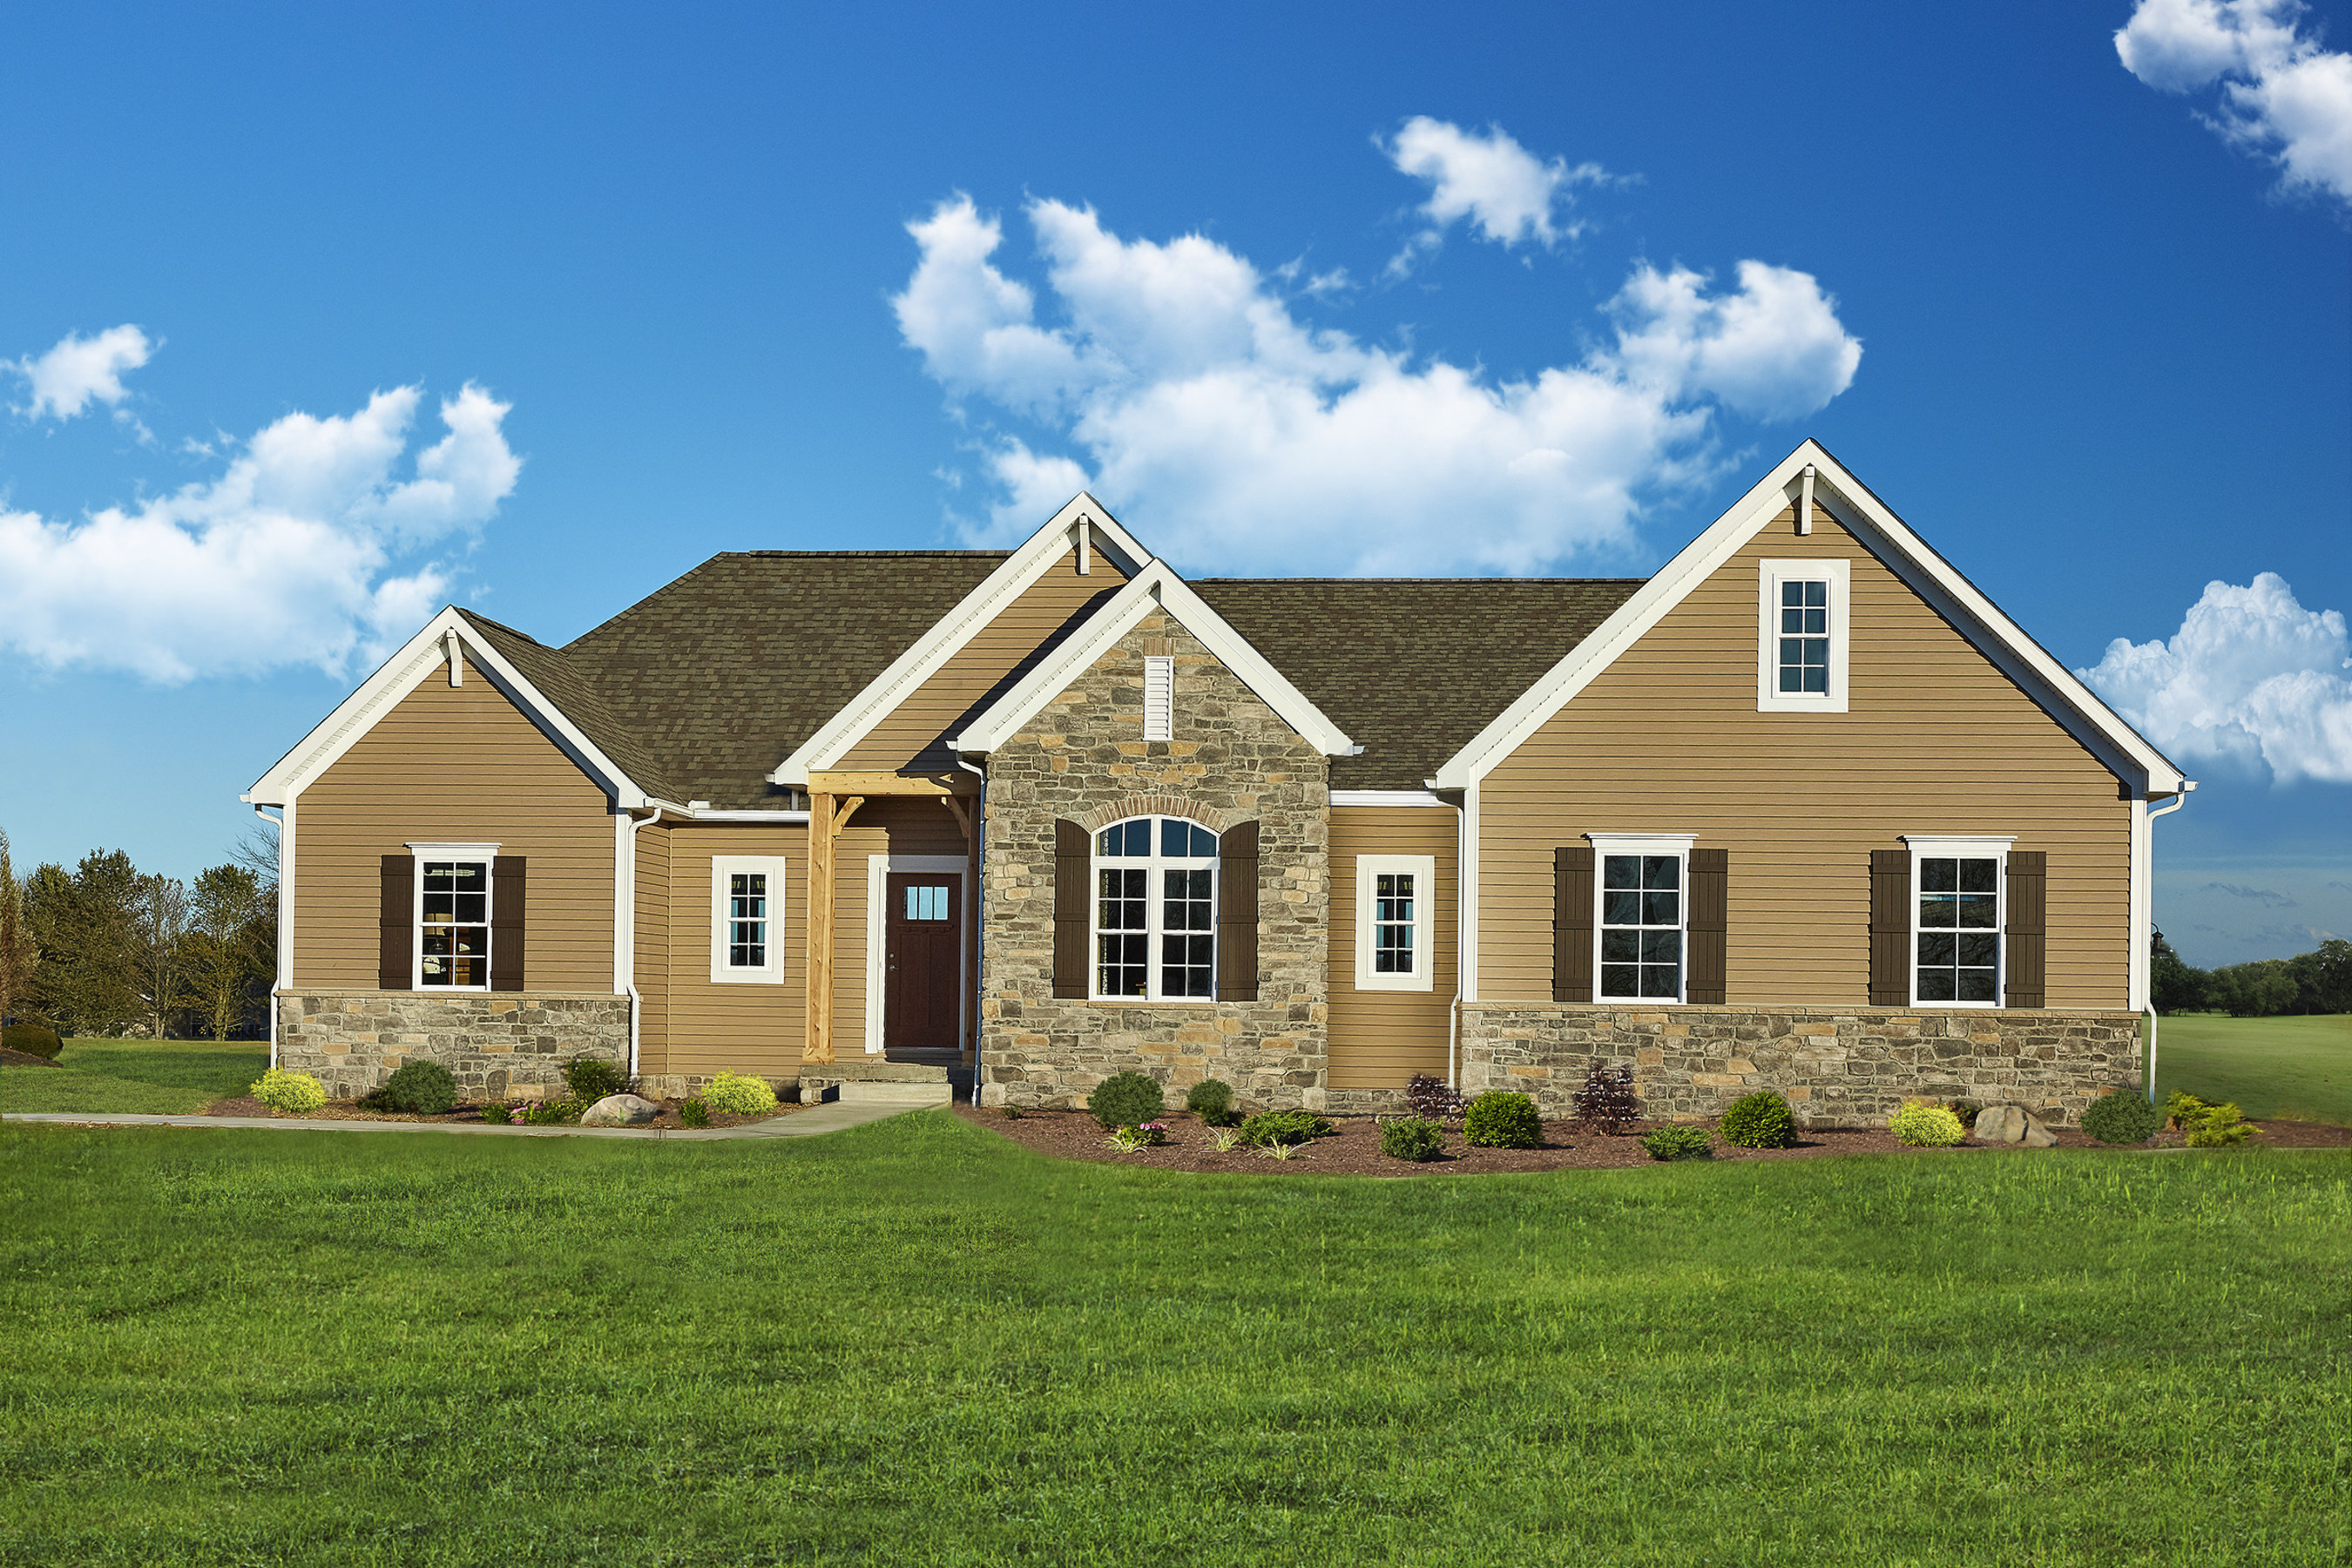 Custom Home Builder Schumacher Homes Opens Exciting New Model Home in Circleville, Ohio